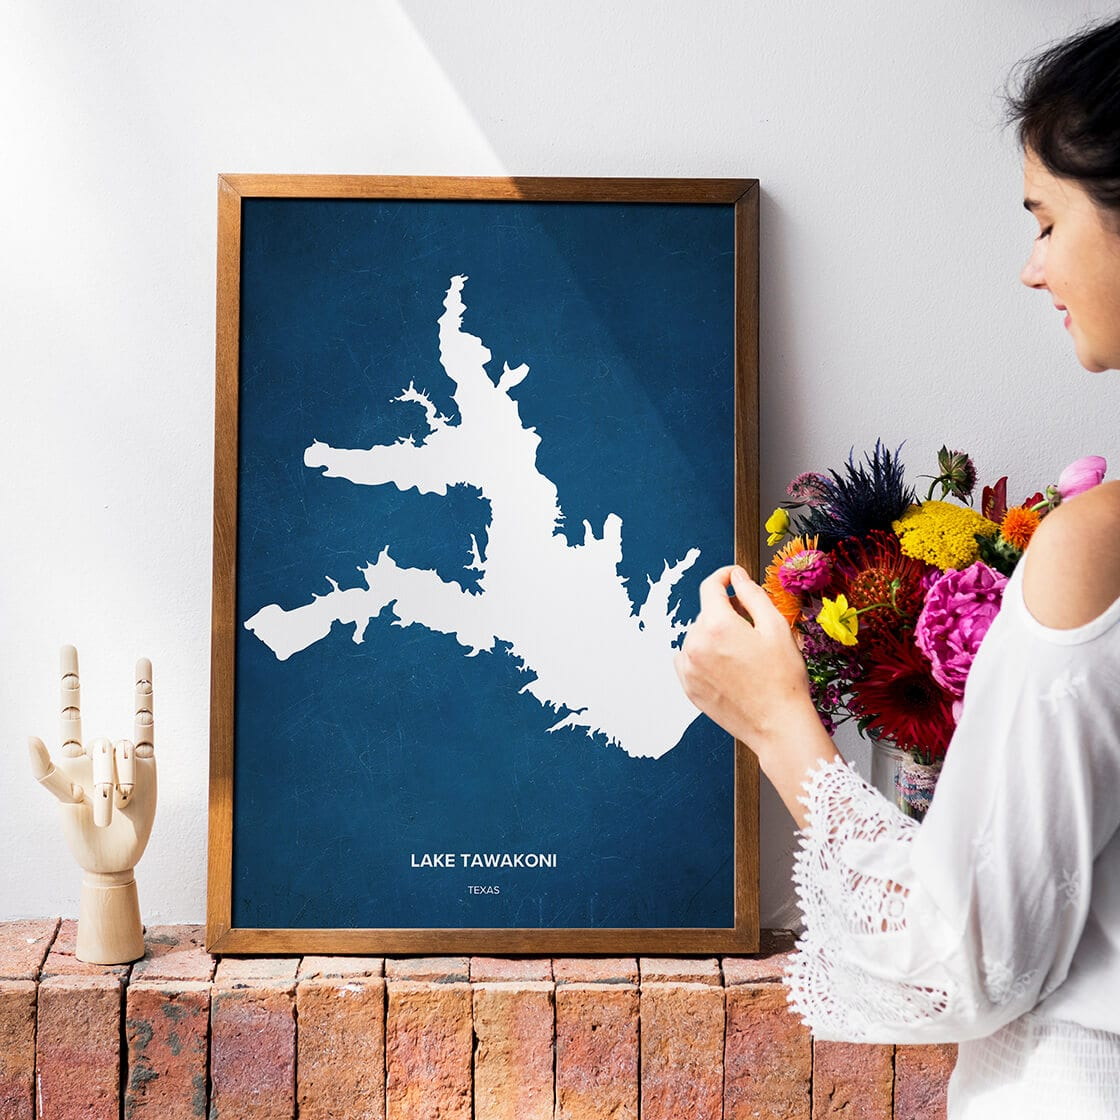 an apartment decorated with flowers and a Lake Tawakoni map poster.